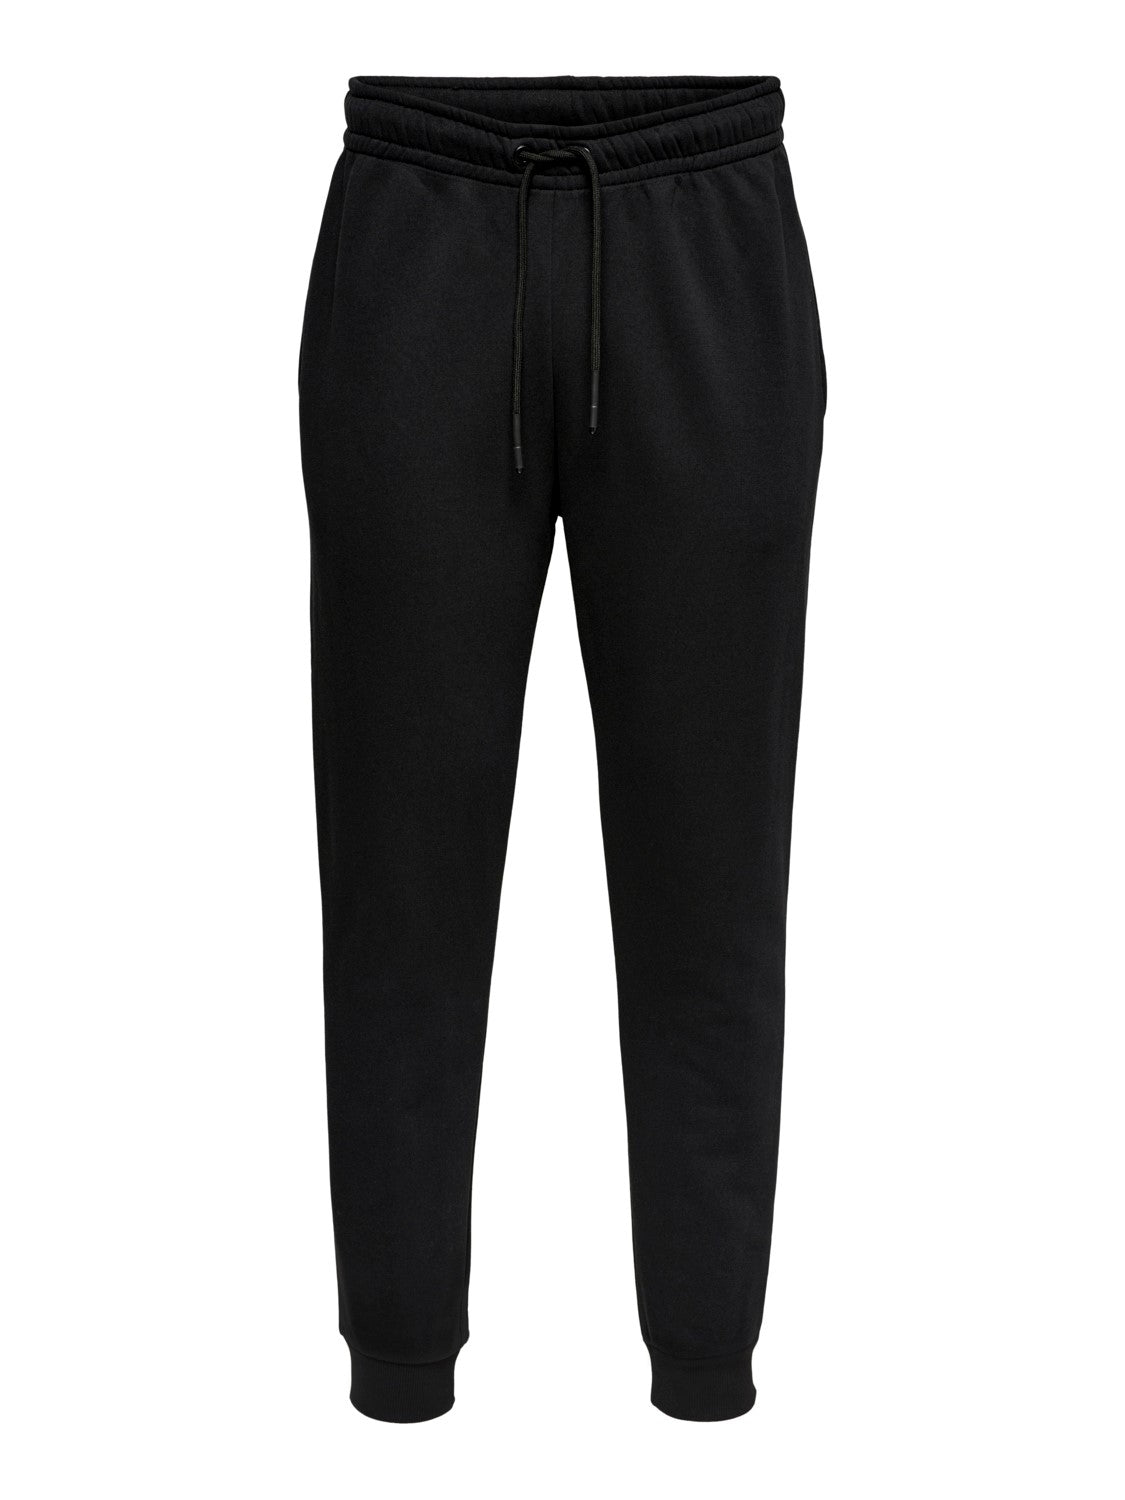 CERES LIFE SWEAT PANTS NOOS - Sort - Only & Sons